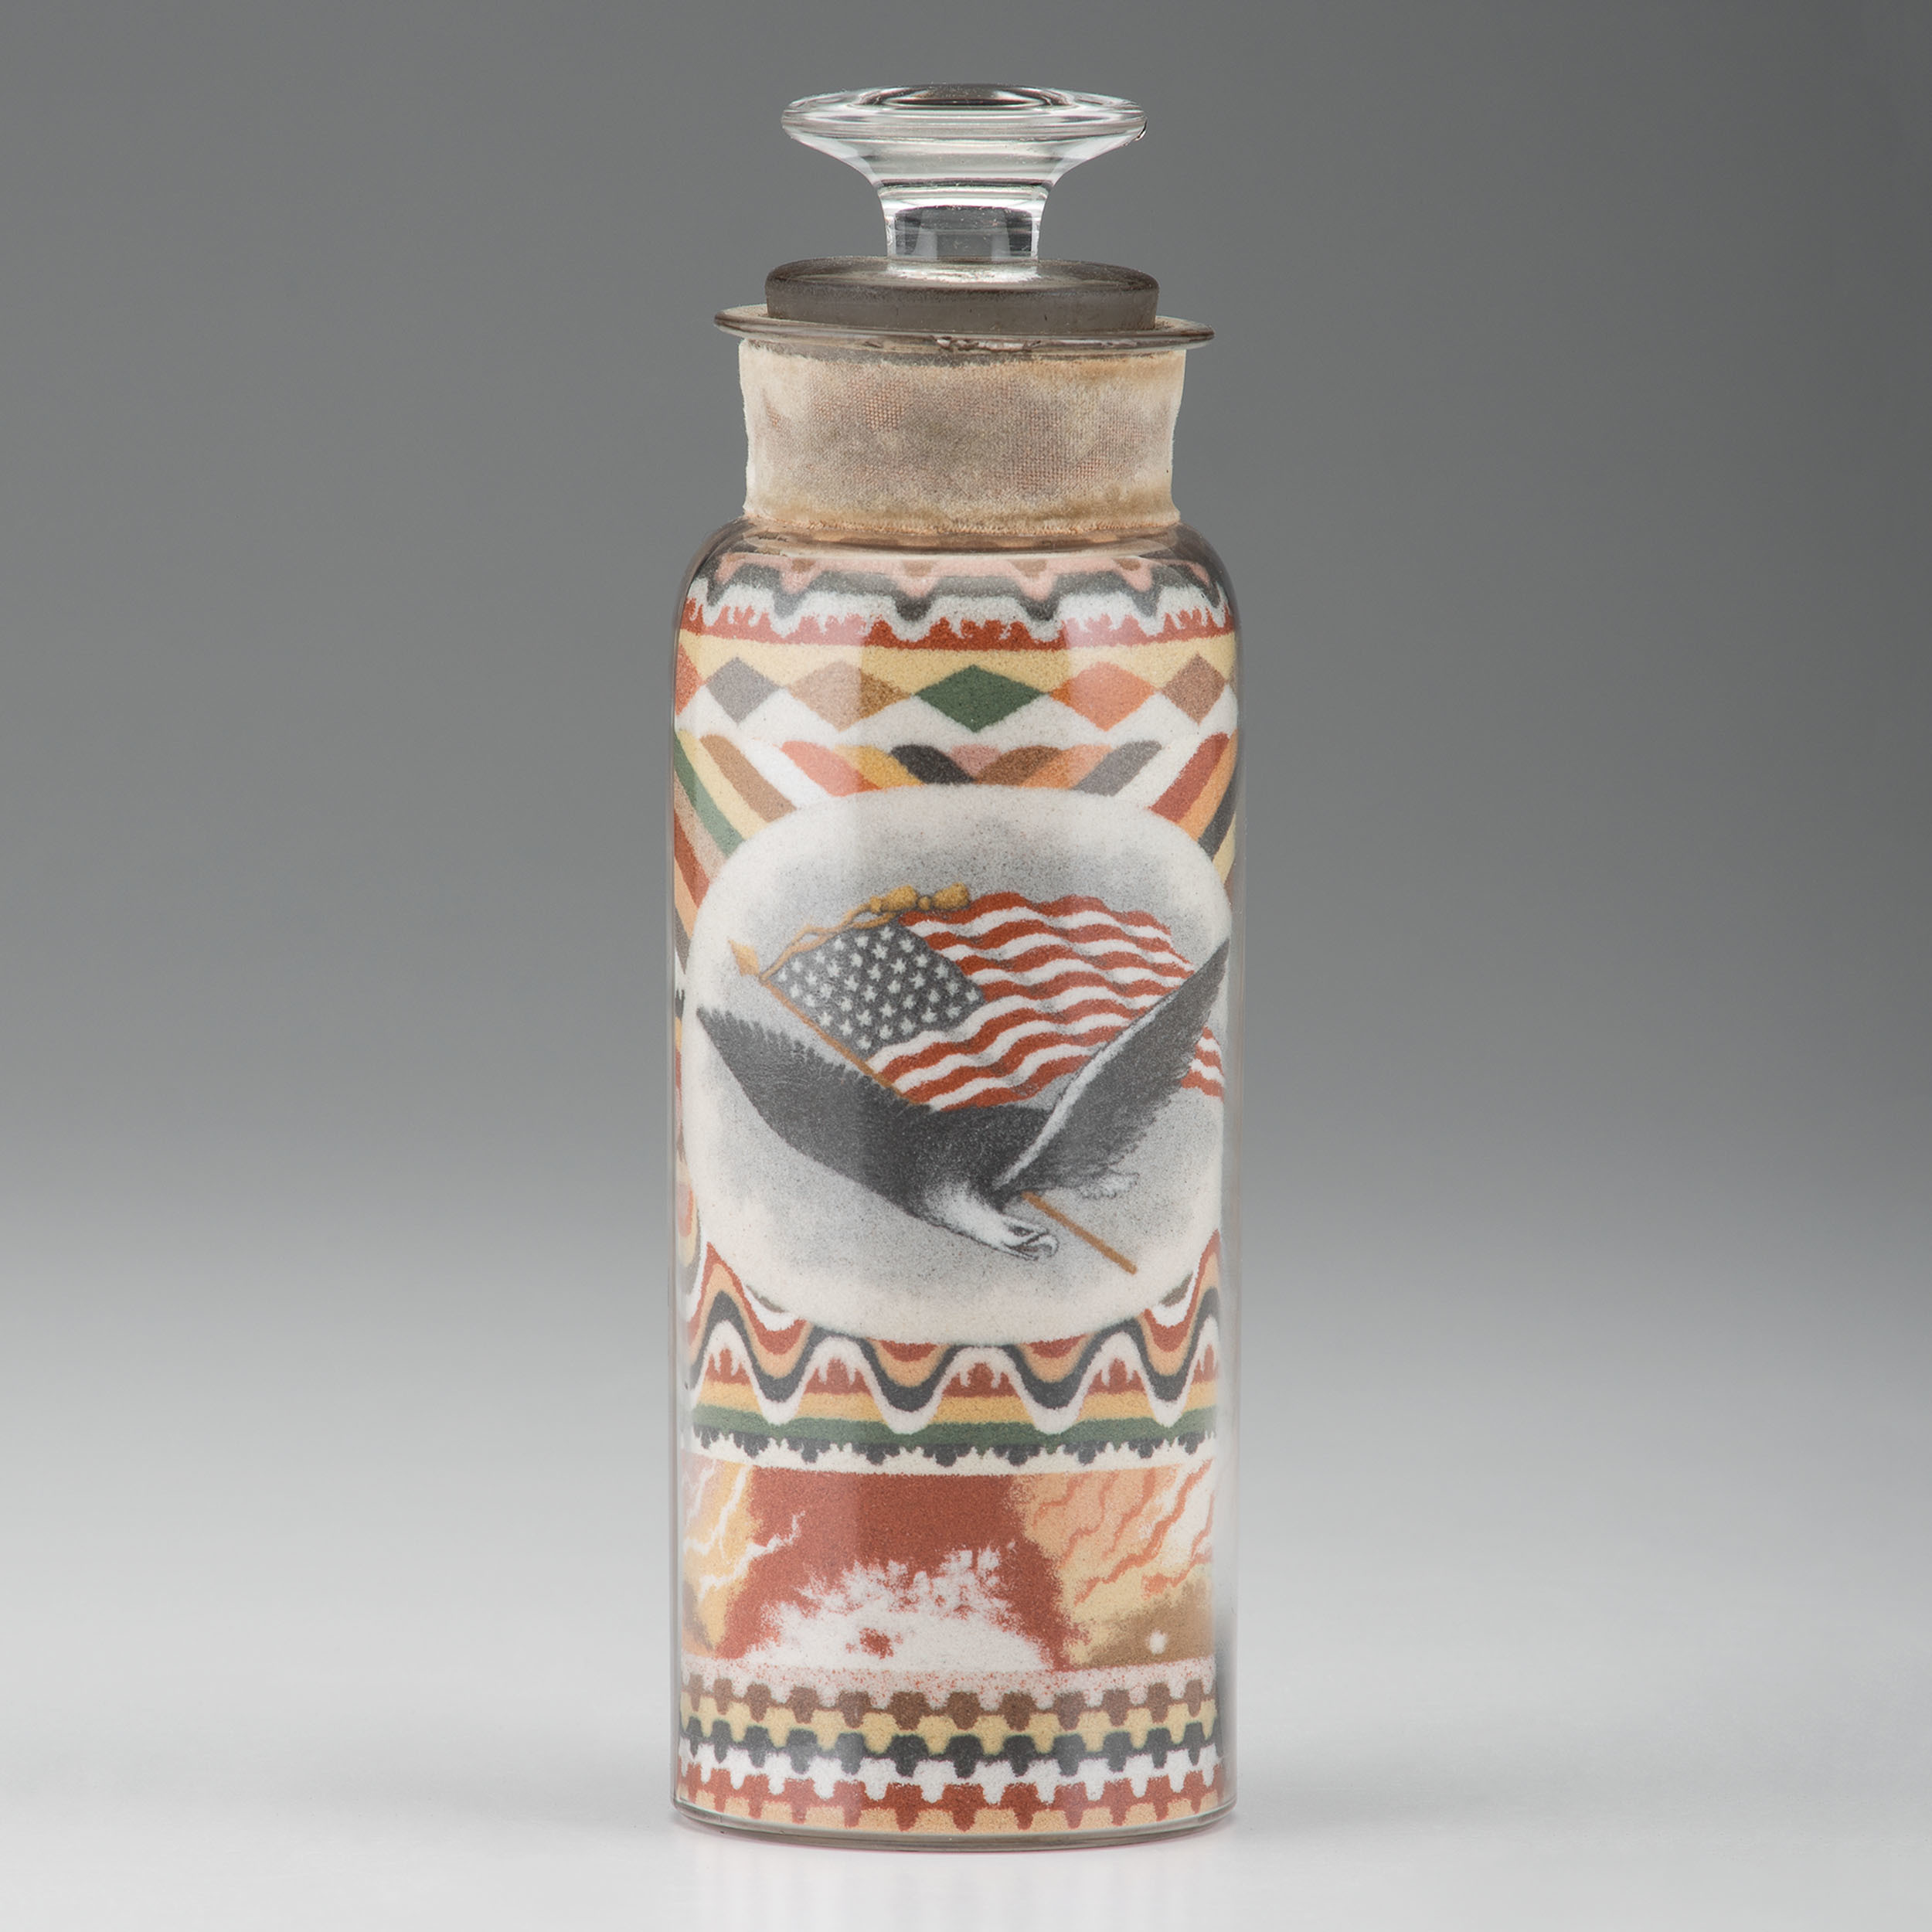 Andrew Clemens created this example of bottled sand art in 1887. It has a patriotic theme that showcases a flying eagle and a streaming American flag. Clemens developed his own techniques for arranging the layers and sections of colored sand to create elaborate, distinct imagery.